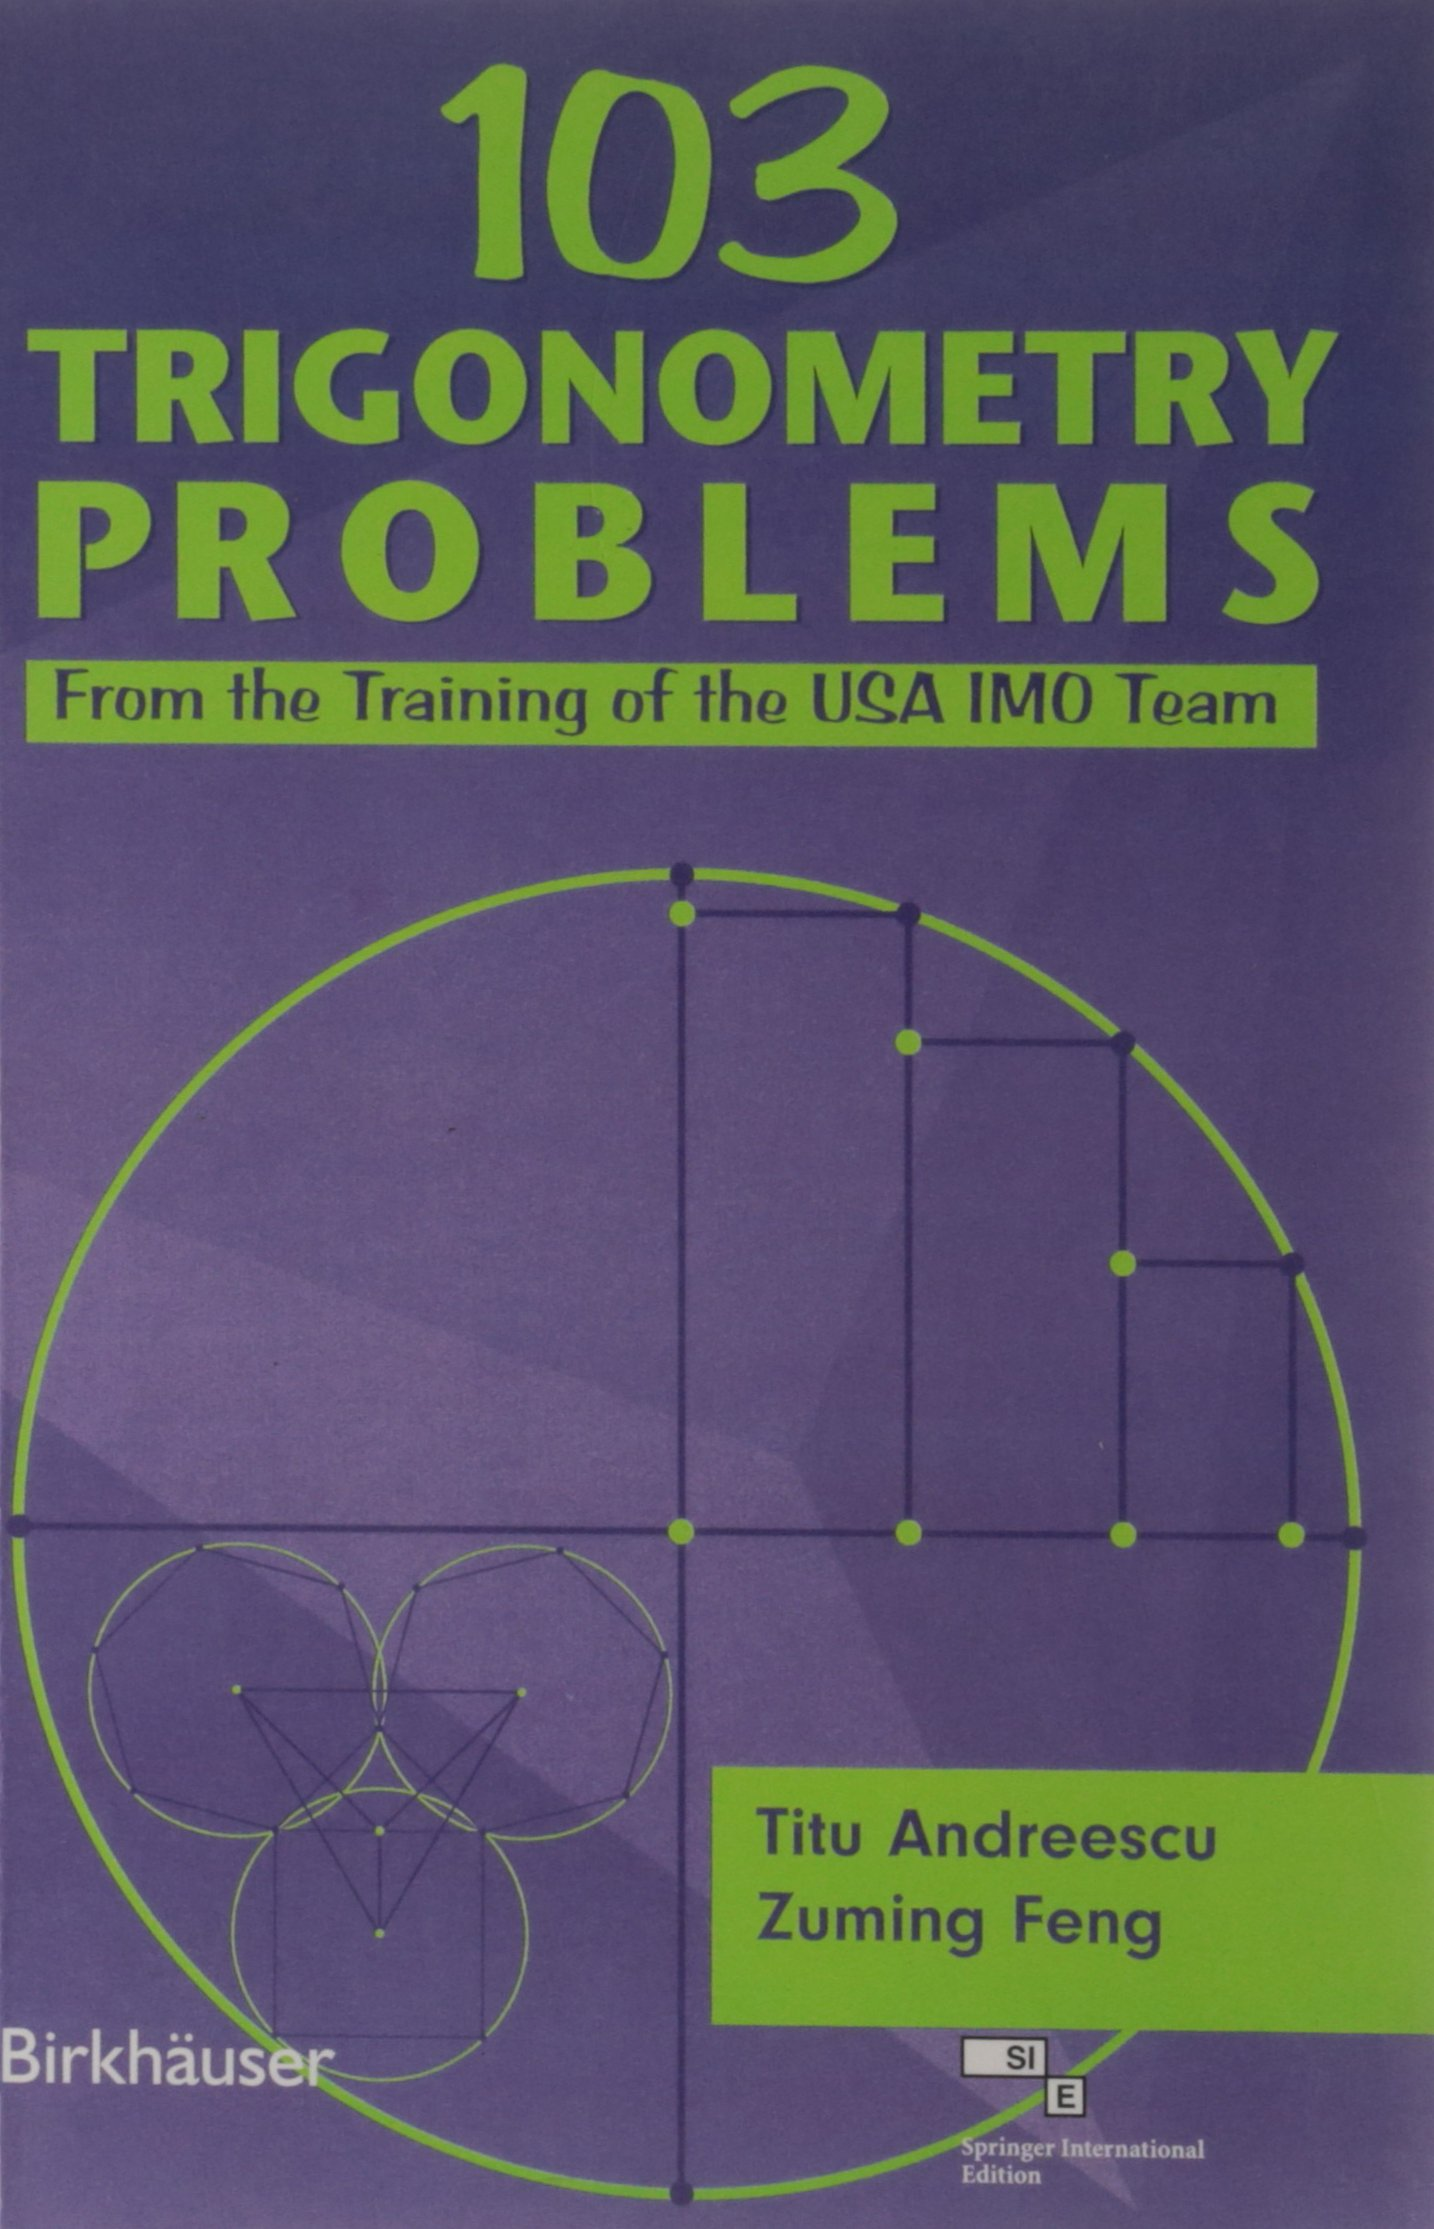 103 Trigonometry Problems ; From the Training of the USA IMO Team: Titu  Andreecu Zuming Feng: 9788181283399: Amazon.com: Books